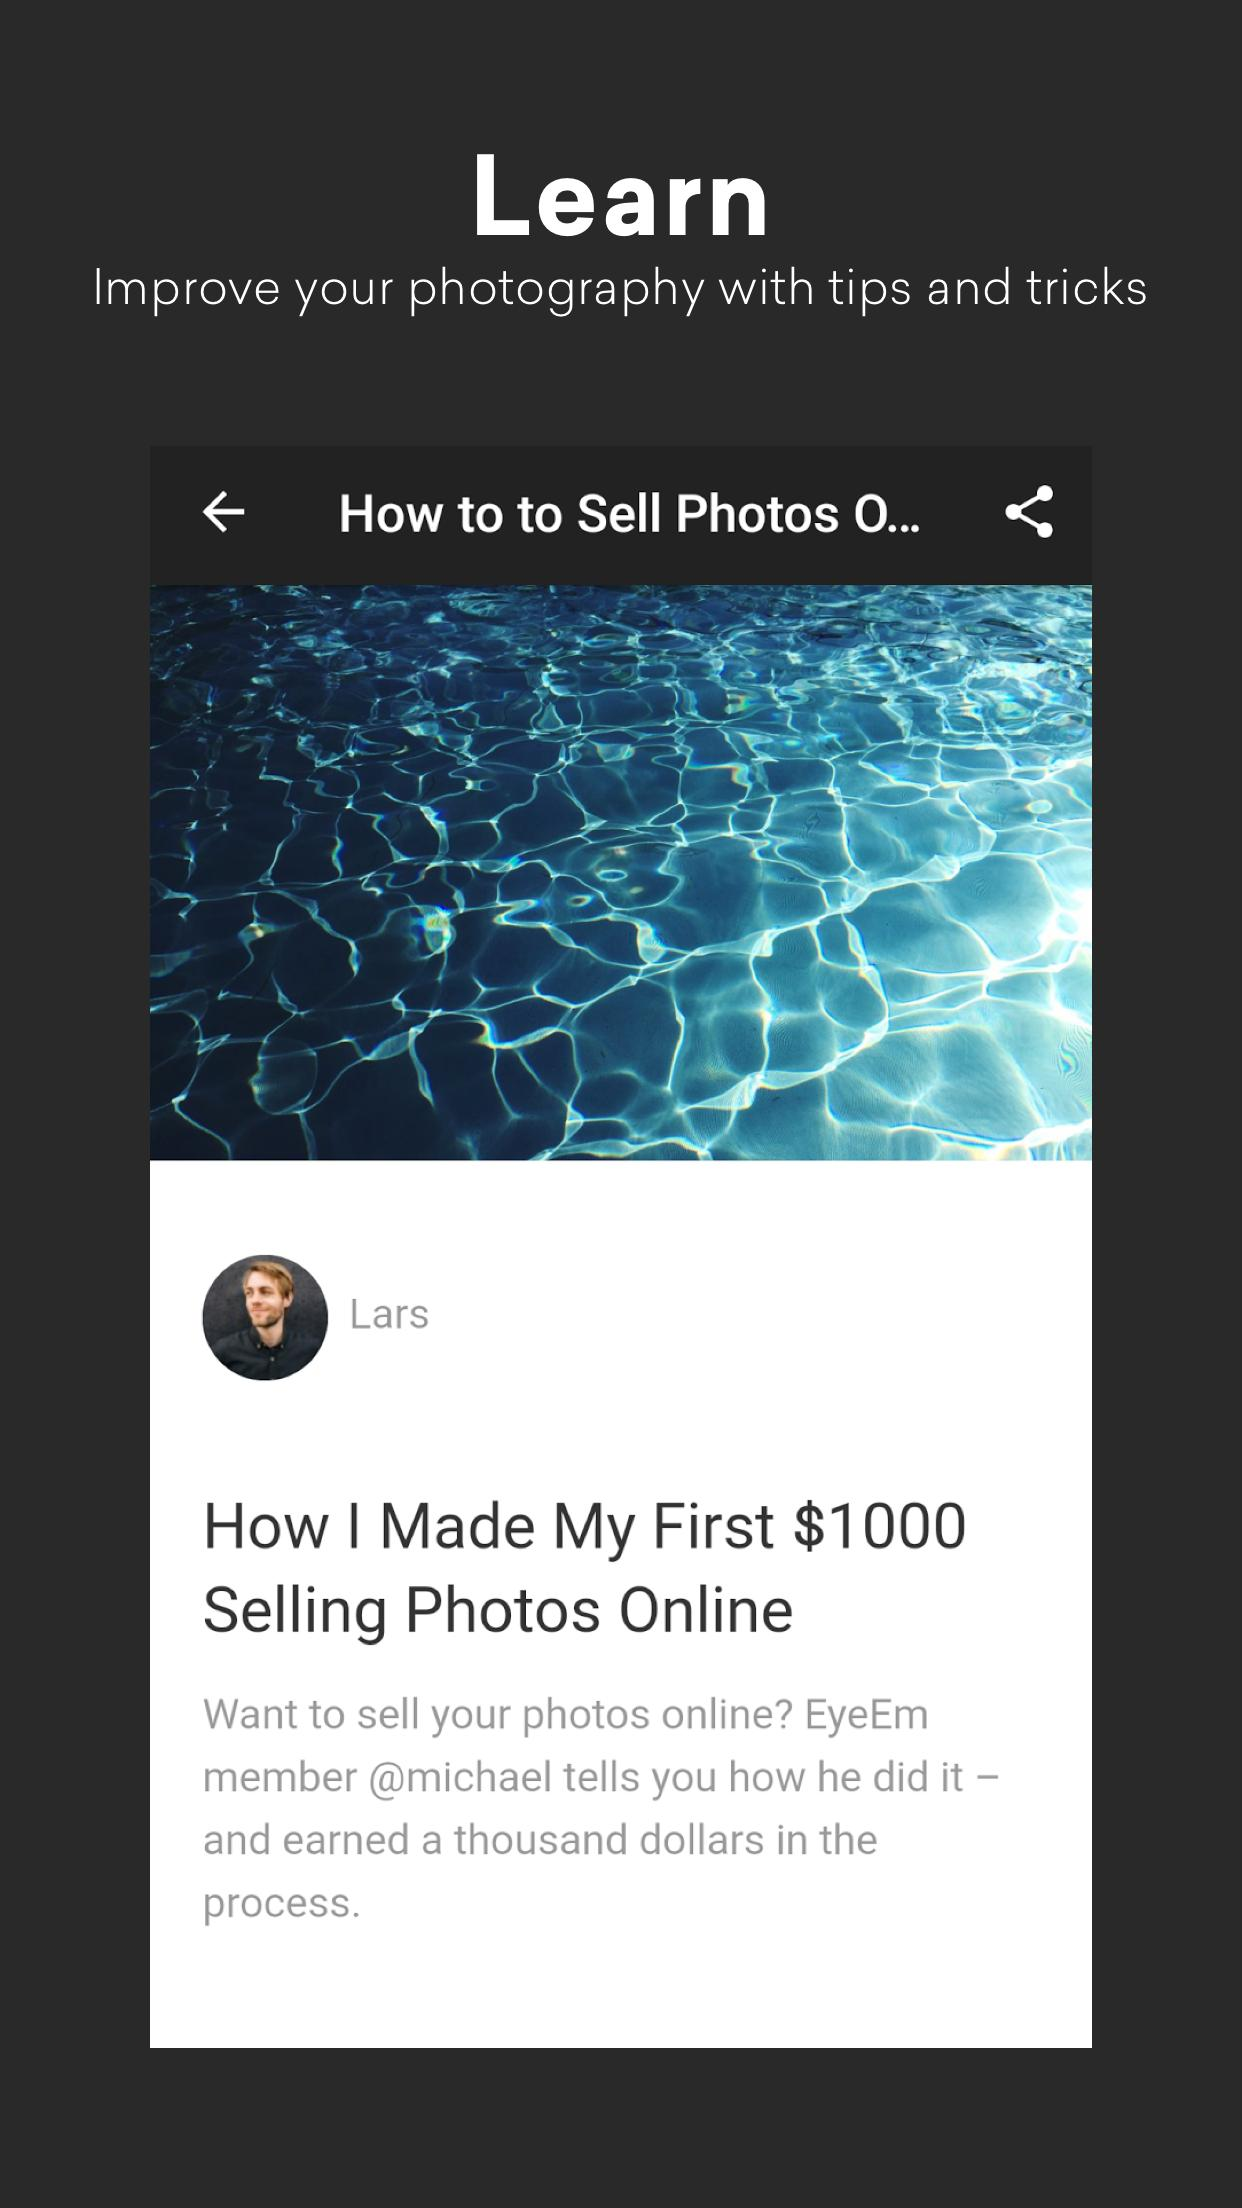 EyeEm Free Photo App For Sharing & Selling Images 8.1 Screenshot 5